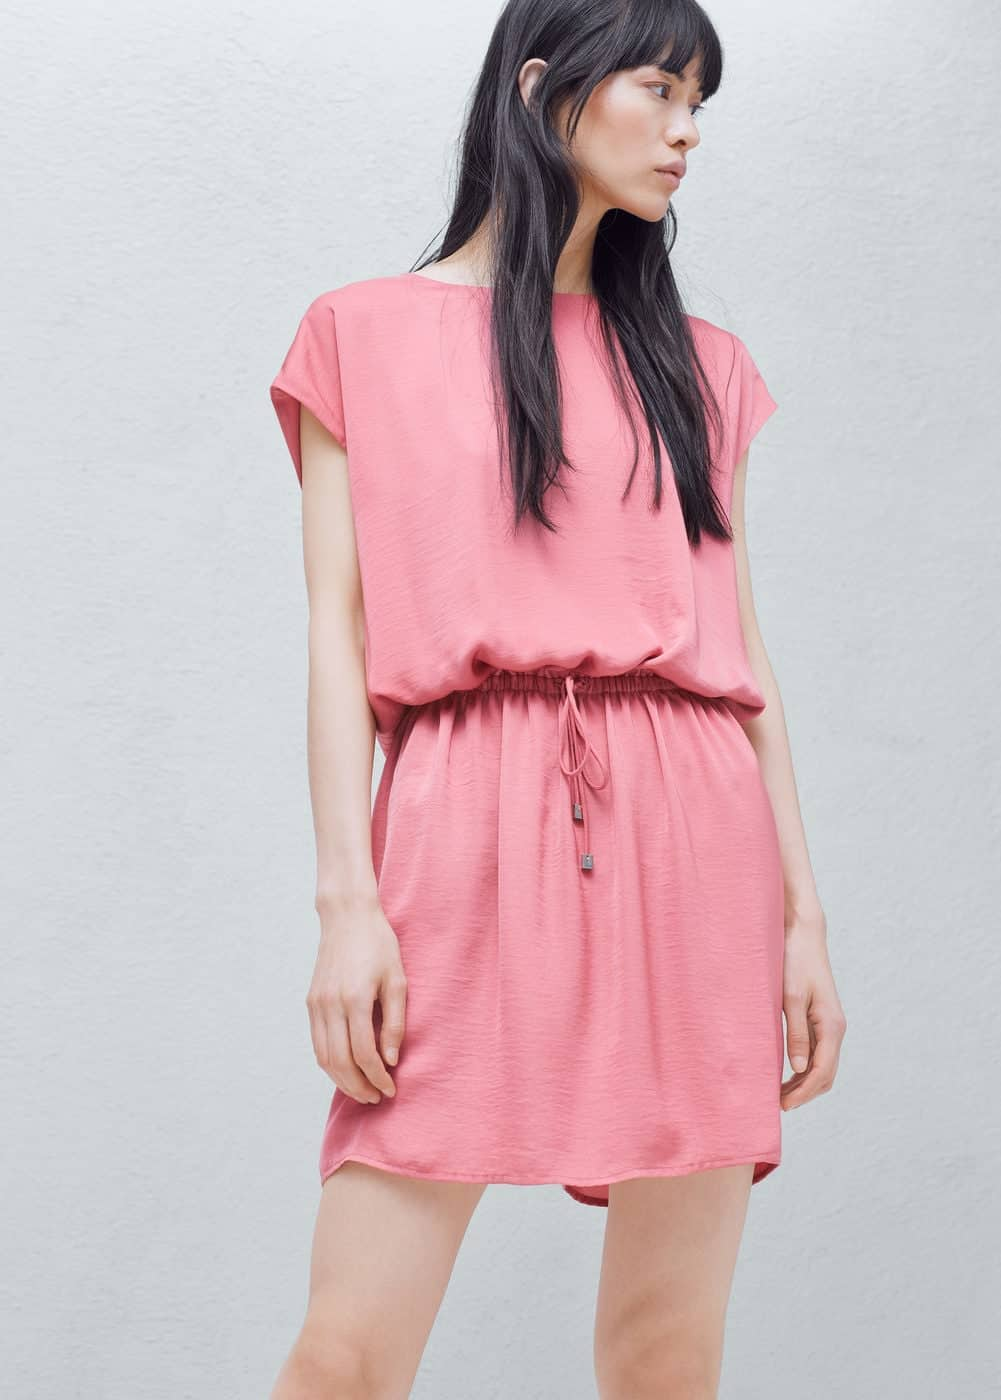 elastic waist collection - soft pink, tie-waisted dress